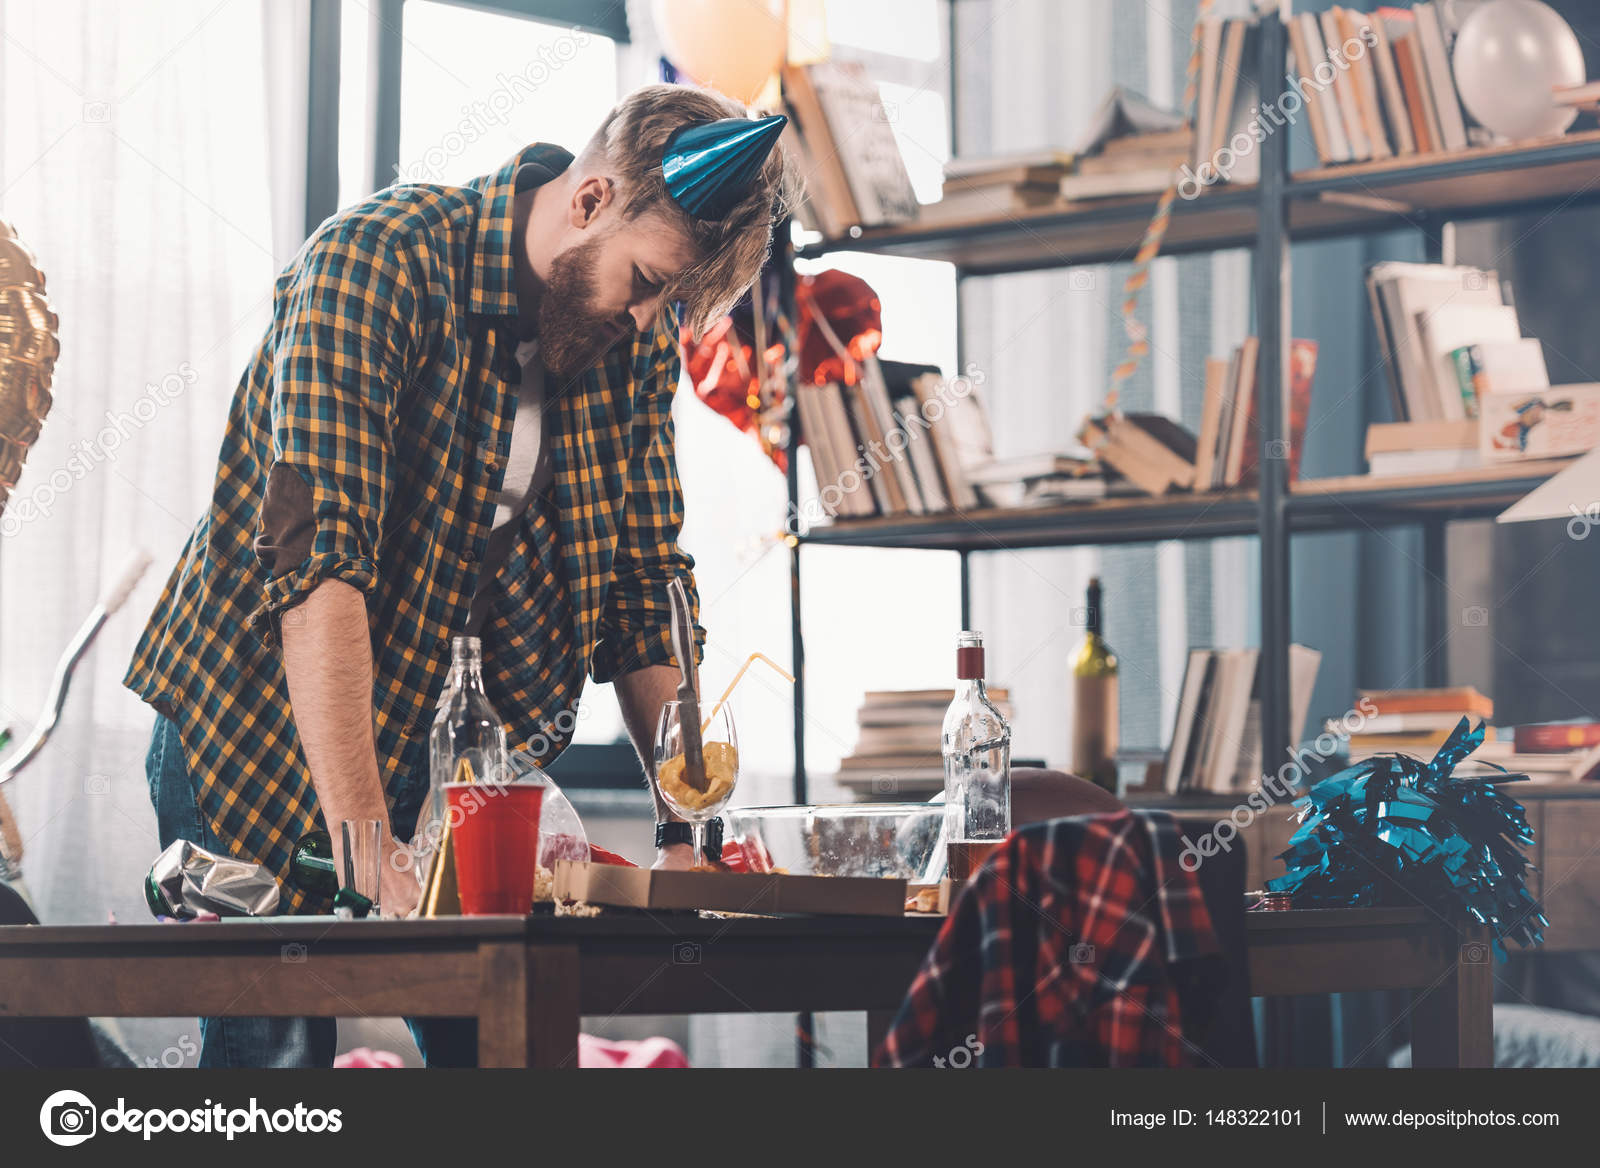 Cleaning Messy Room man cleaning messy room — stock photo © arturverkhovetskiy #148322101